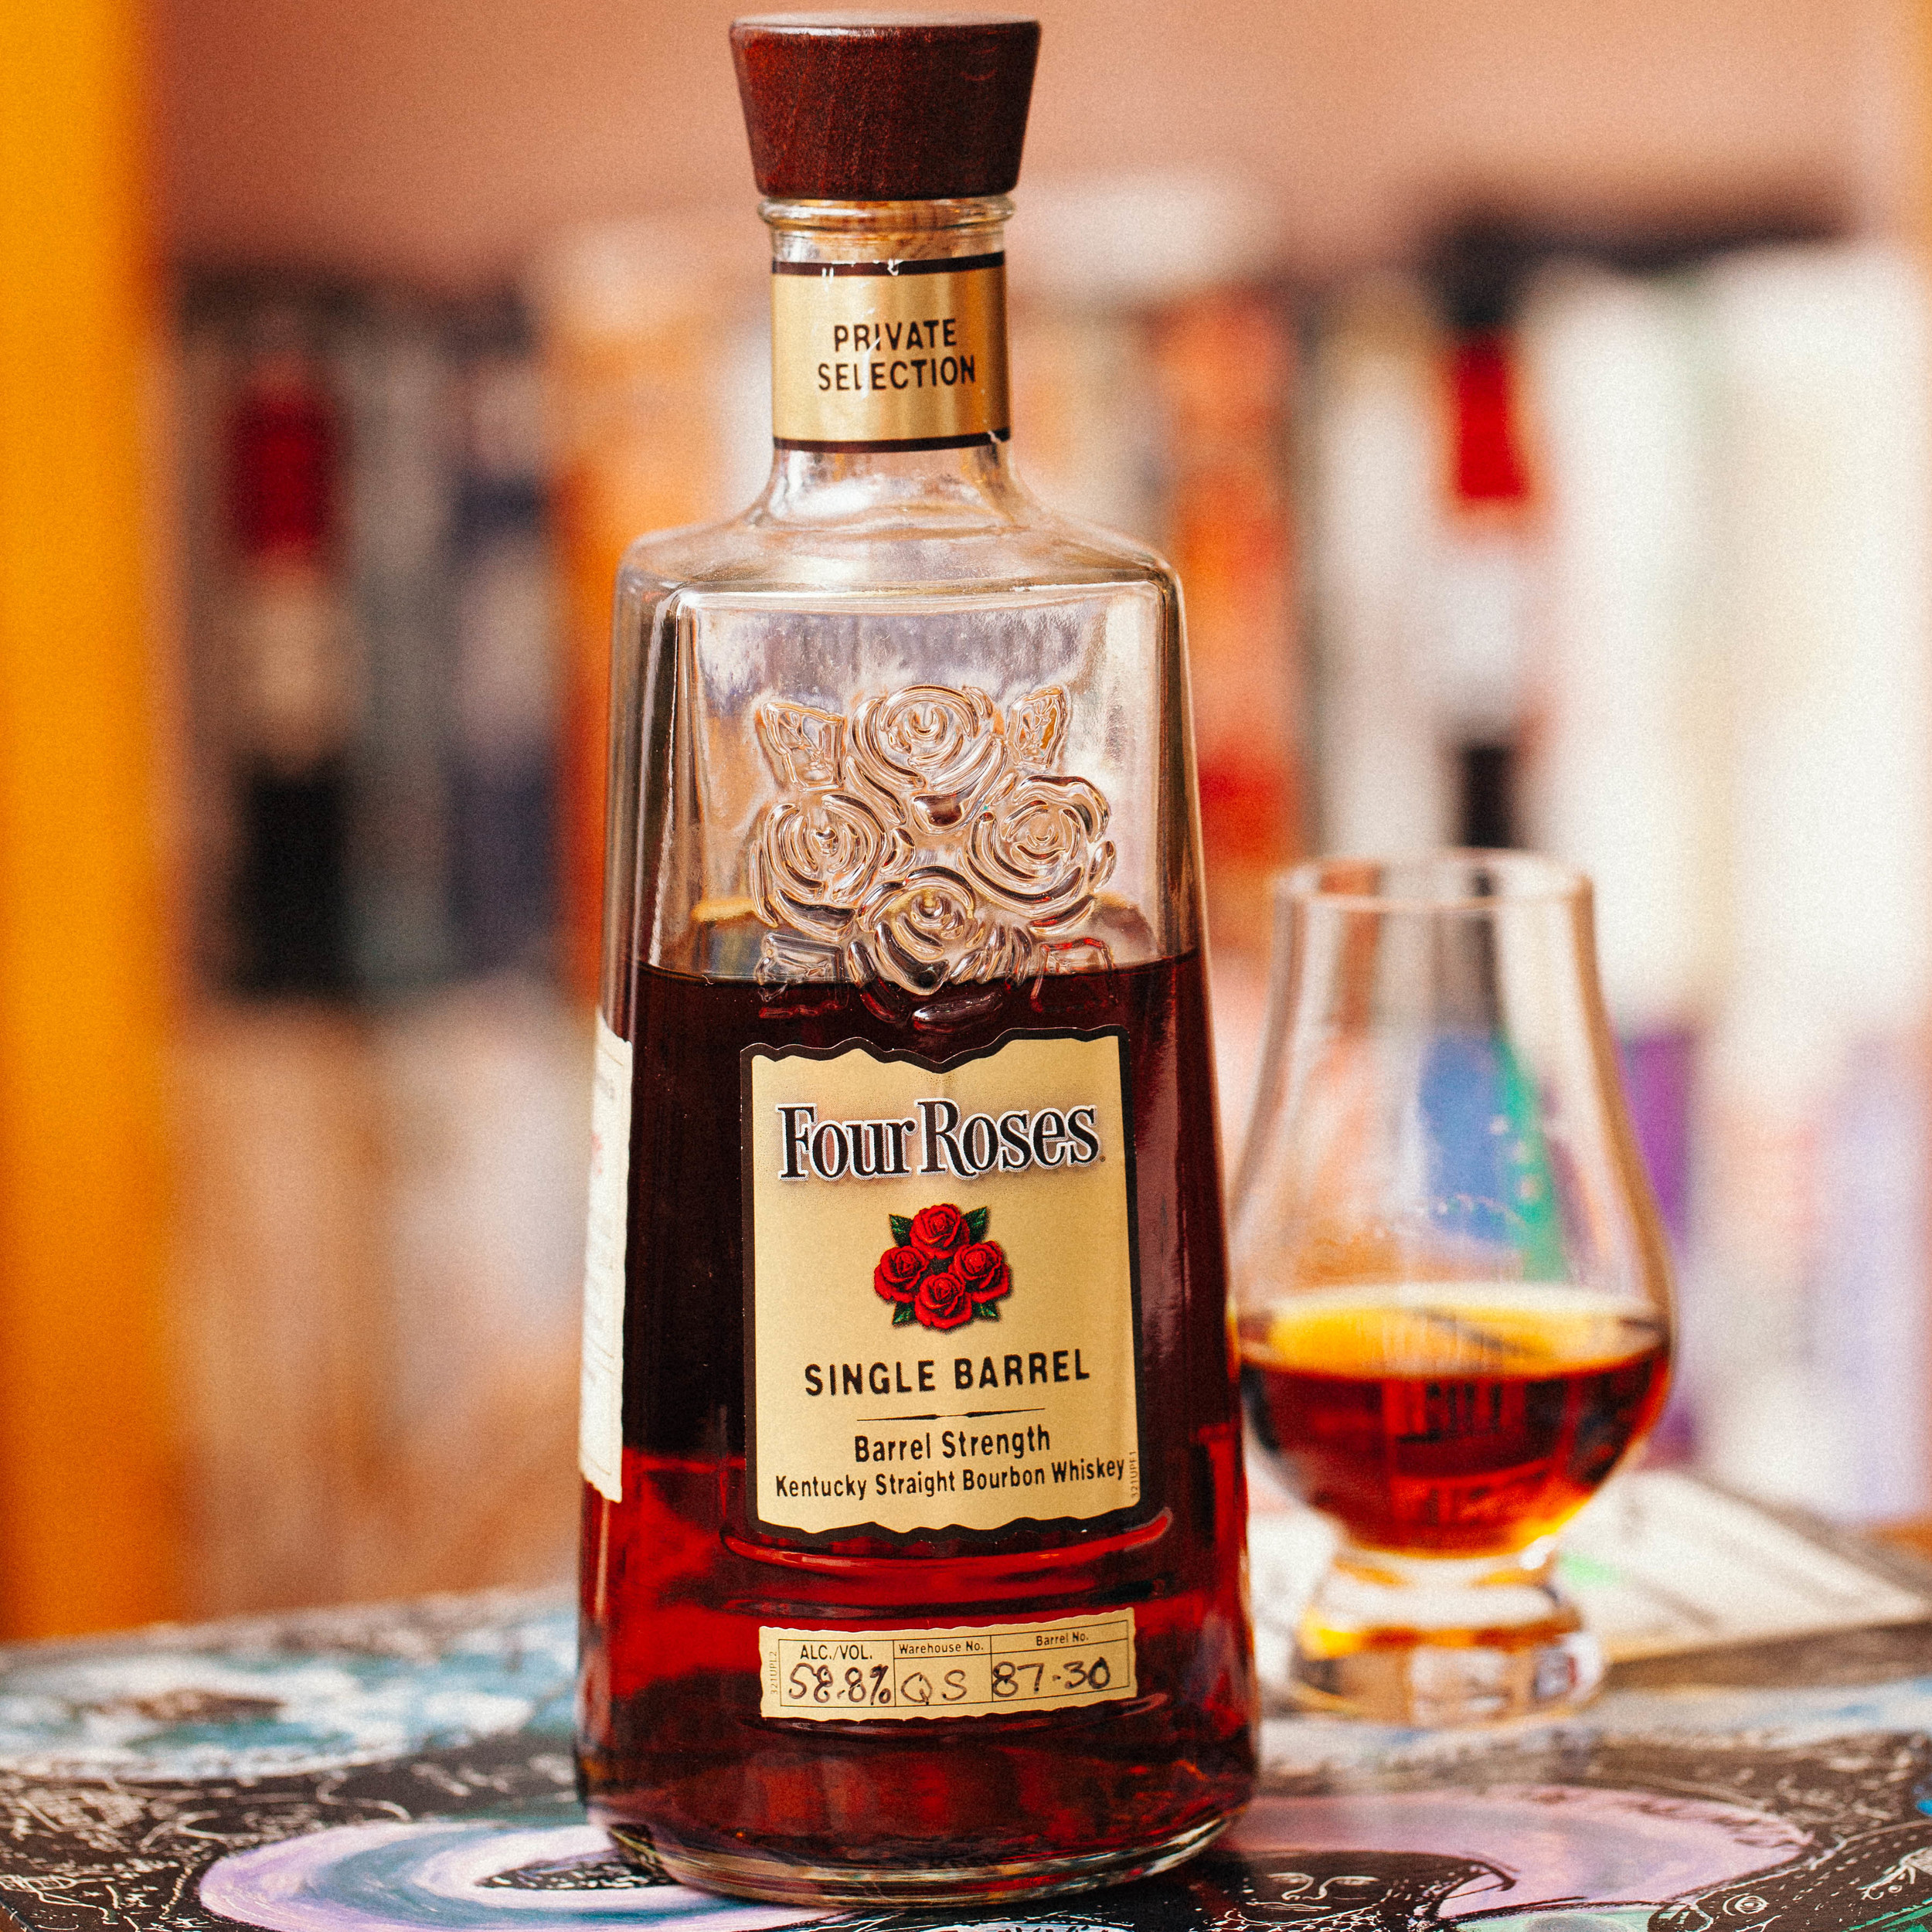 Four Roses neat